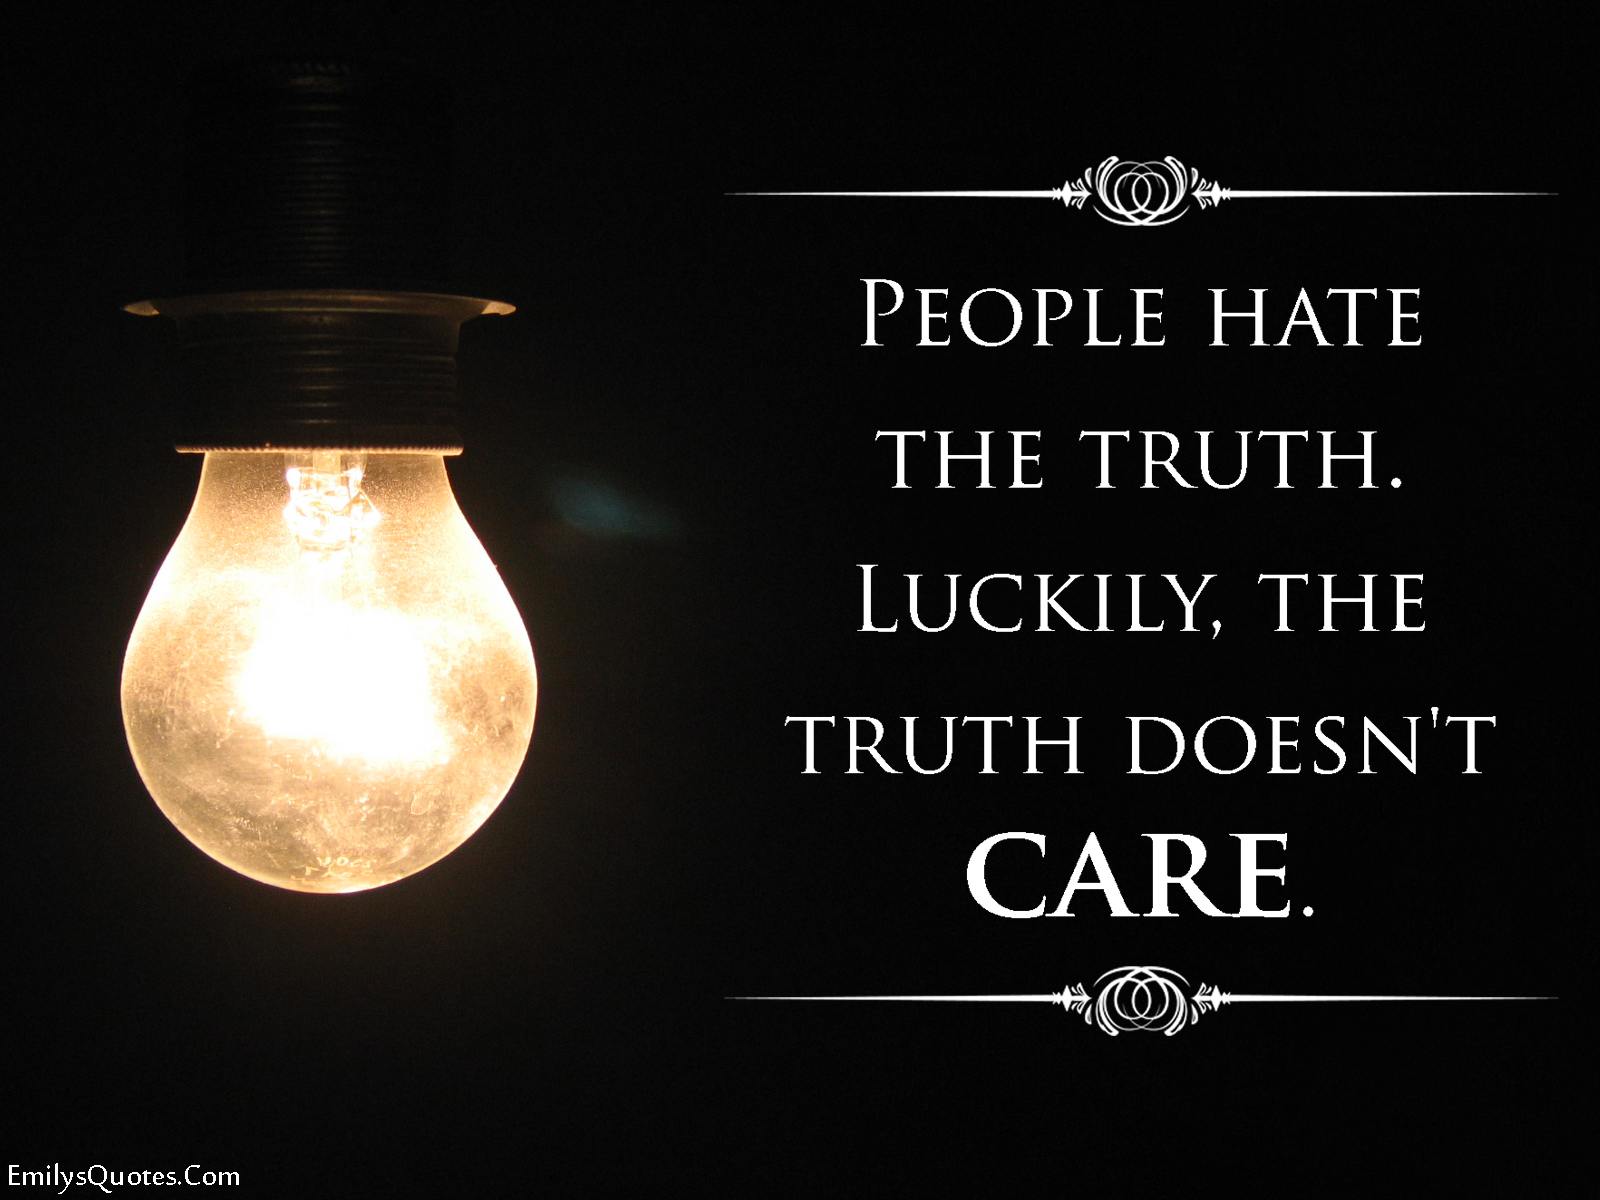 EmilysQuotes.Com - people, hate, truth, caring, ignorance, unknown